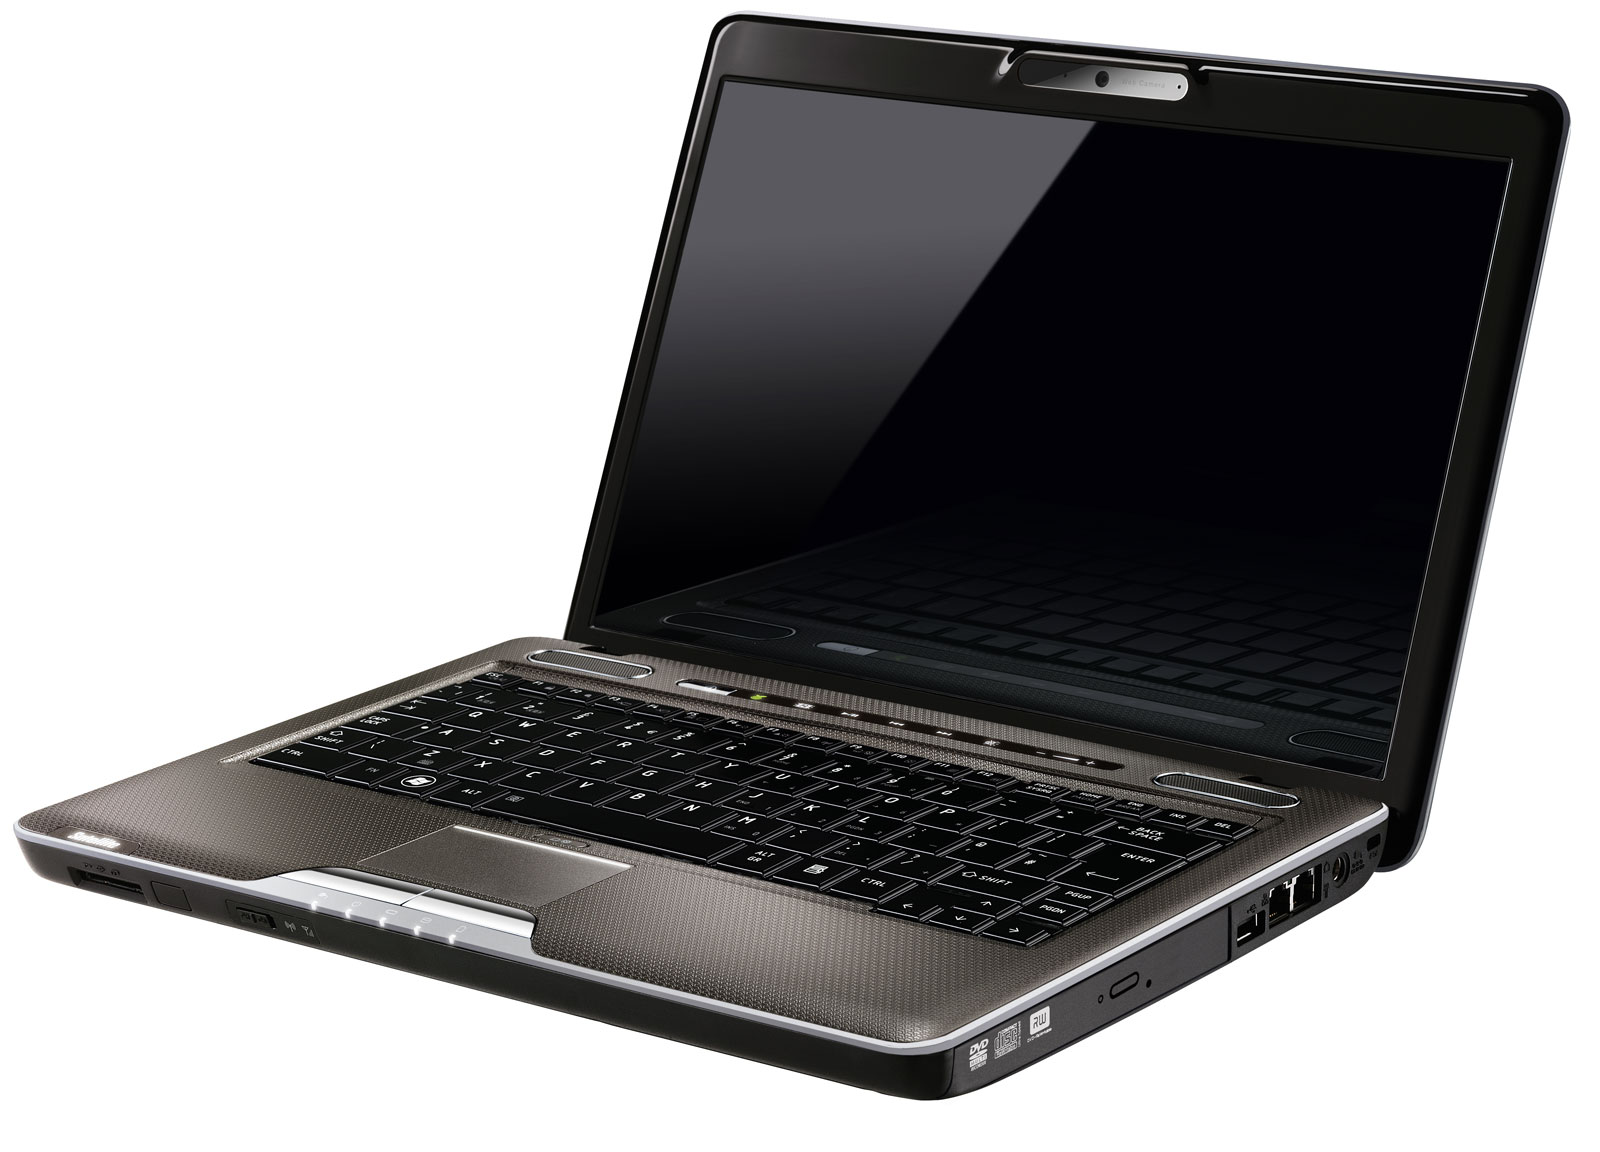 TOSHIBA SATELLITE U500-10N DRIVERS FOR WINDOWS DOWNLOAD